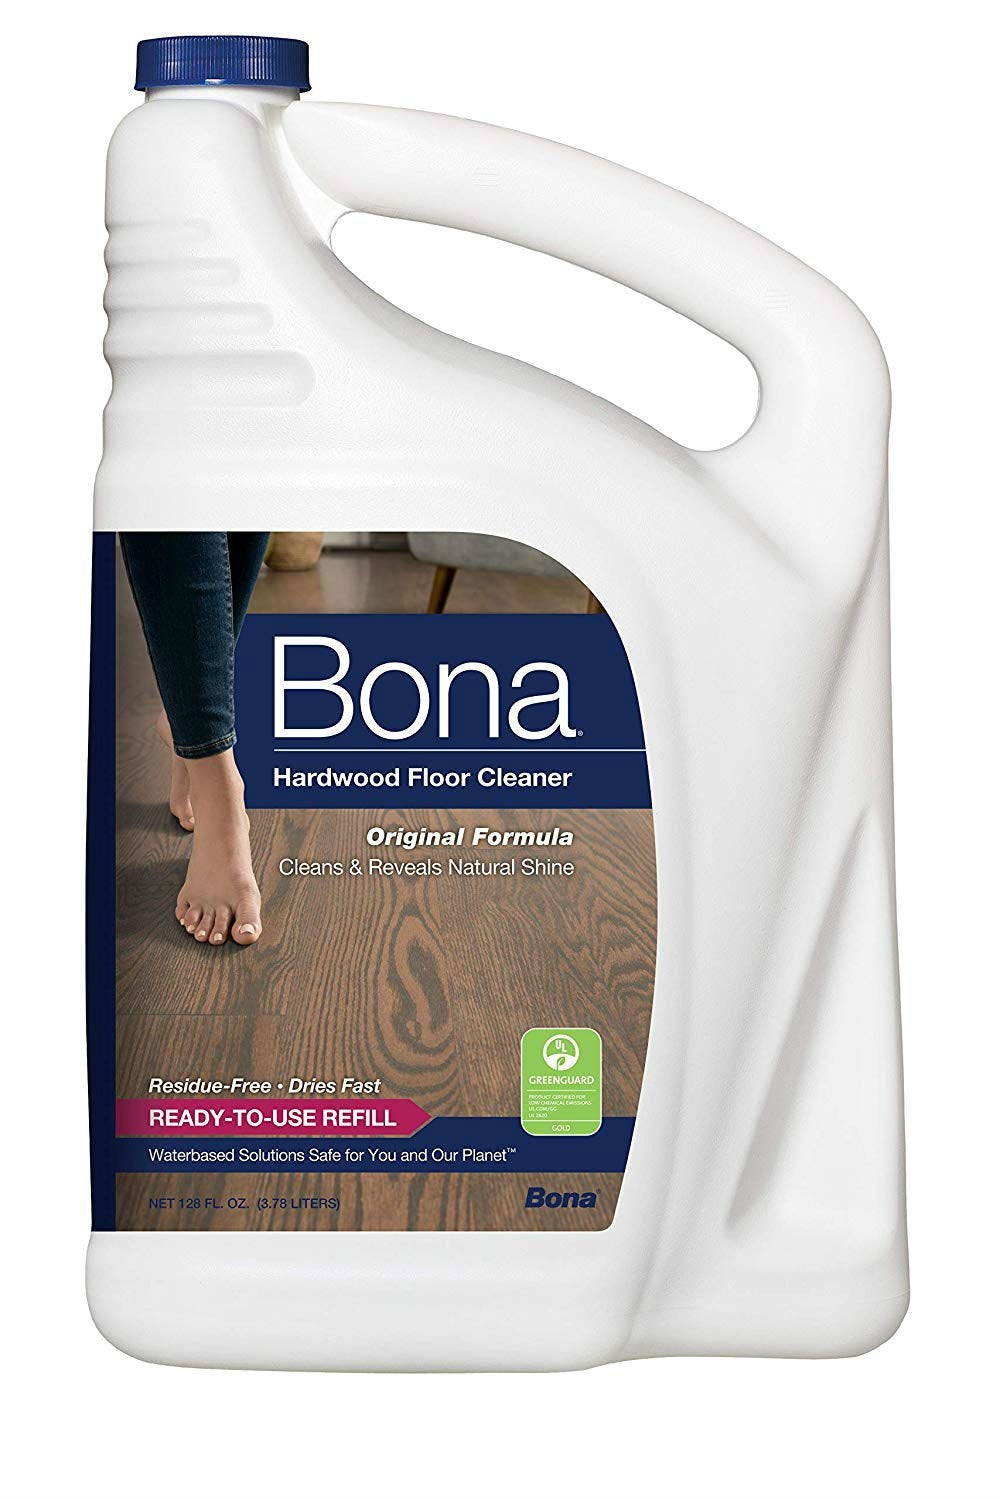 Best Hardwood Floor Cleaner for Large Spaces: Bona